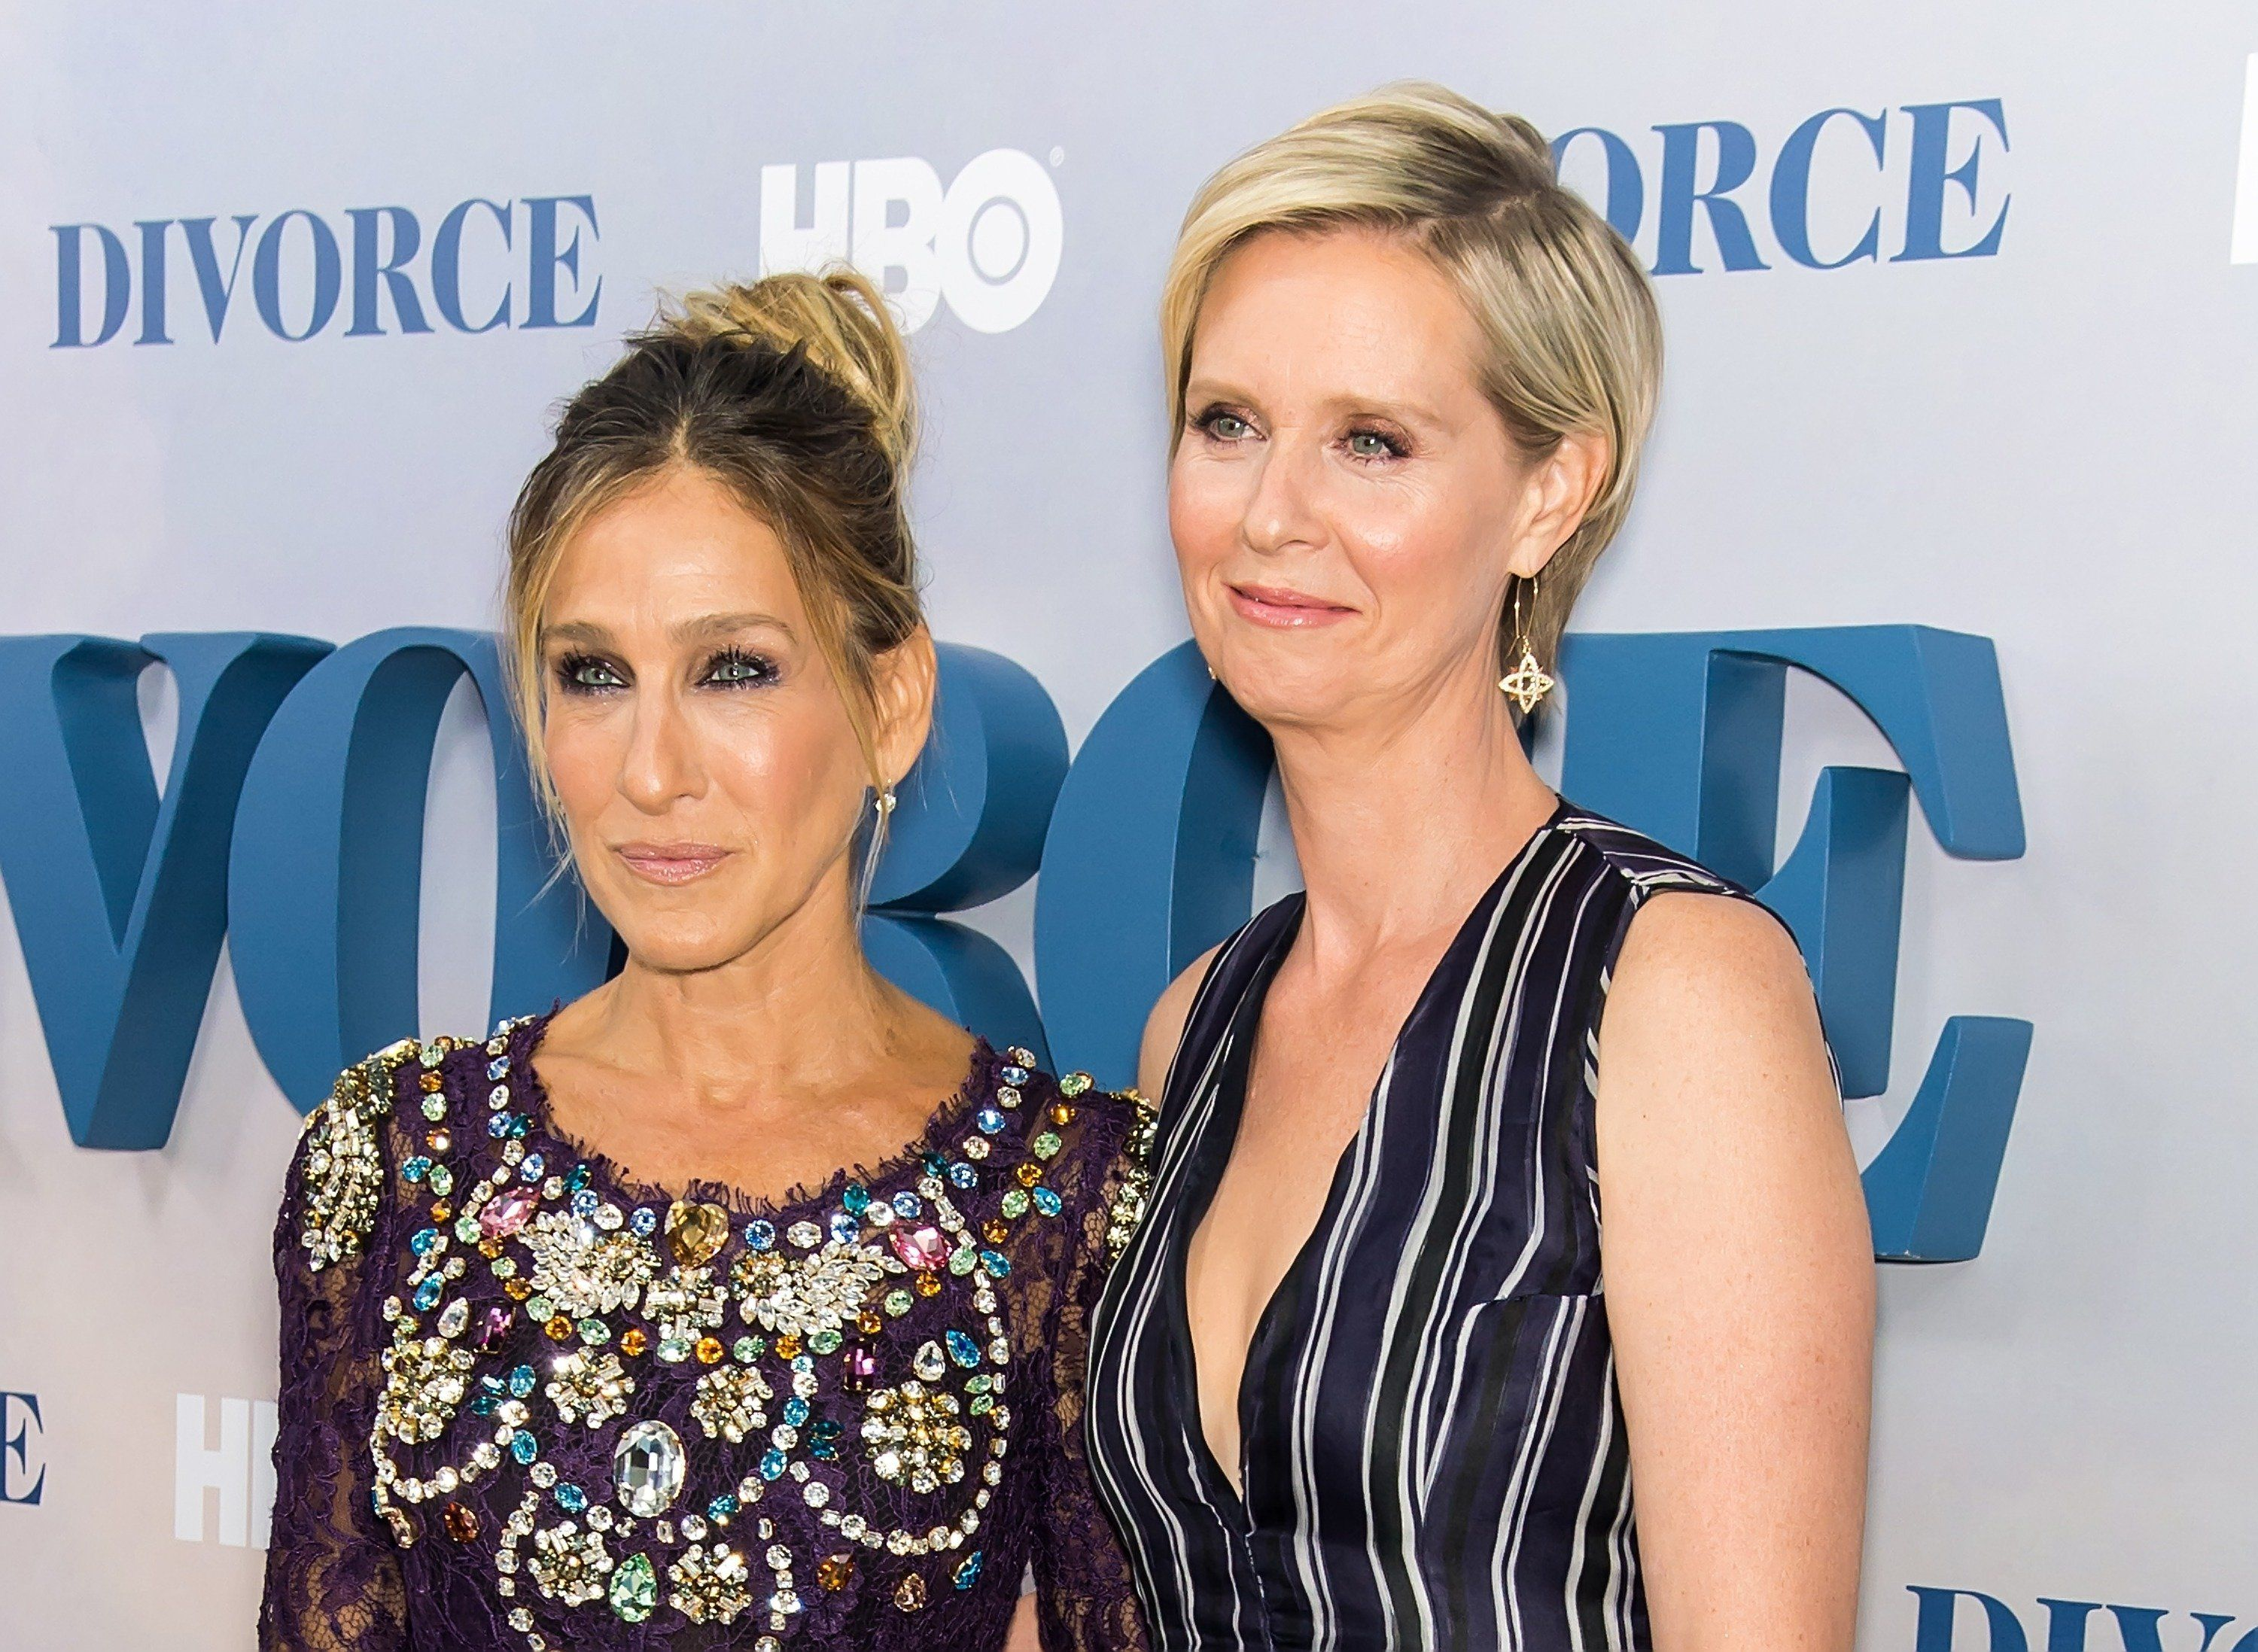 Sarah Jessica Parker formally endorses former co-star Cynthia Nixon's run for governor